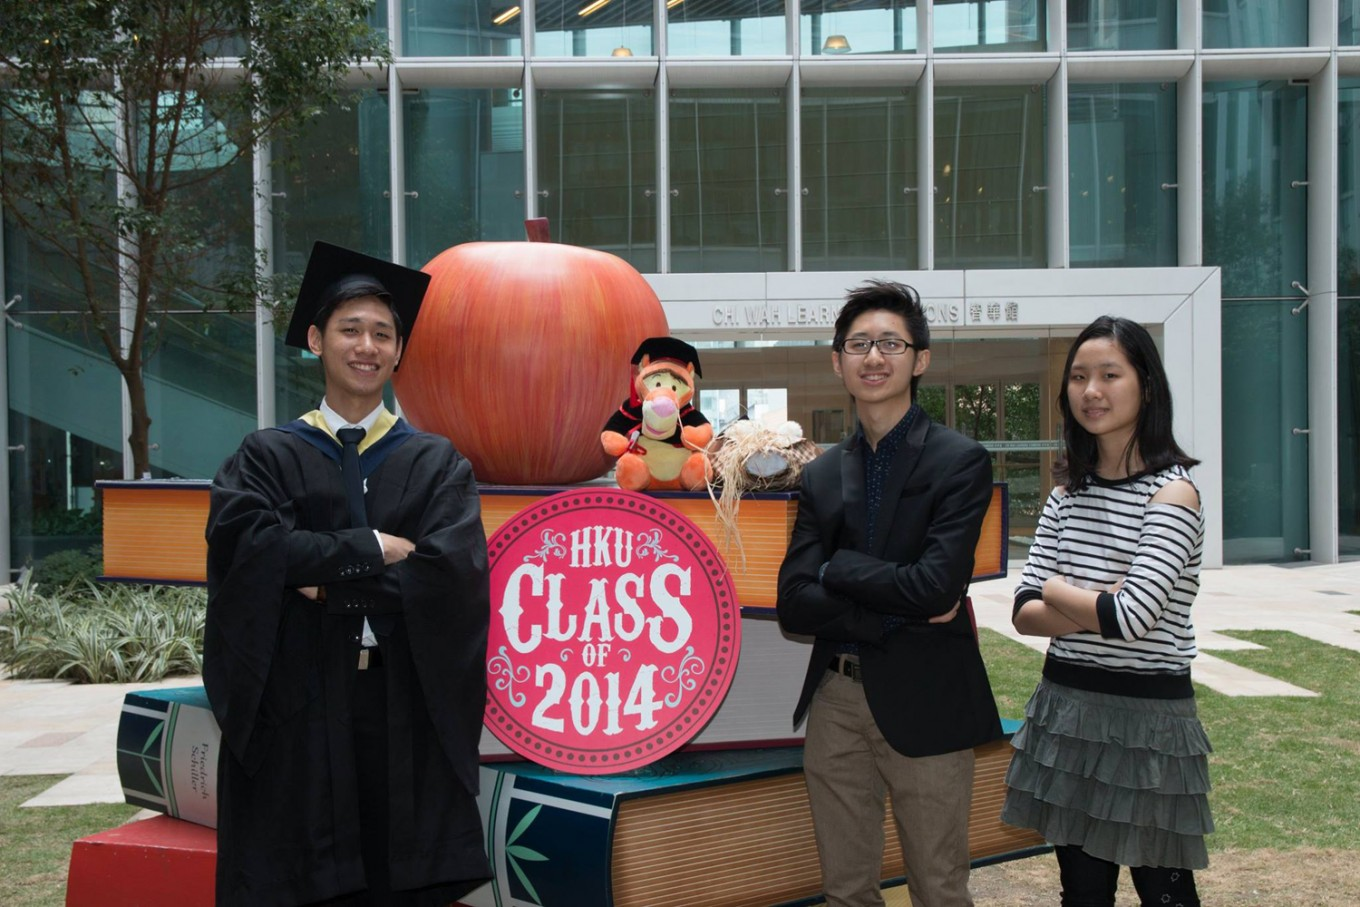 Kevin Sugianto (left), brother of Fernaldy Sugianto (middle), graduated from HKU in 2014